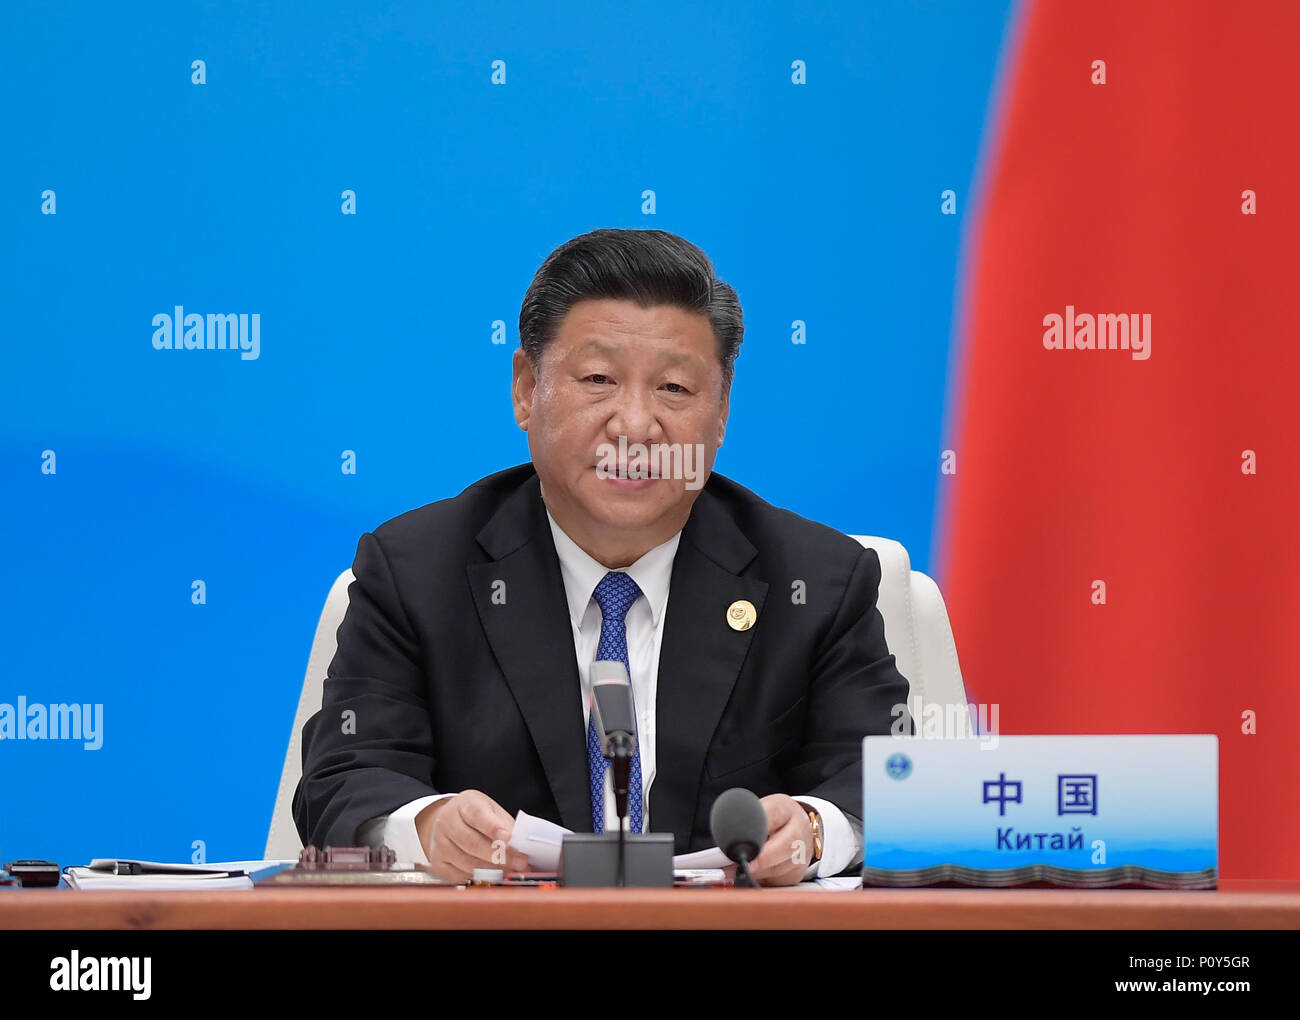 Qingdao, China's Shandong Province. 10th June, 2018. Chinese President Xi Jinping chairs the 18th Meeting of the Council of Heads of Member States of the Shanghai Cooperation Organization (SCO) in Qingdao, east China's Shandong Province, June 10, 2018. Xi delivered a speech during the meeting. Credit: Li Xueren/Xinhua/Alamy Live News - Stock Image